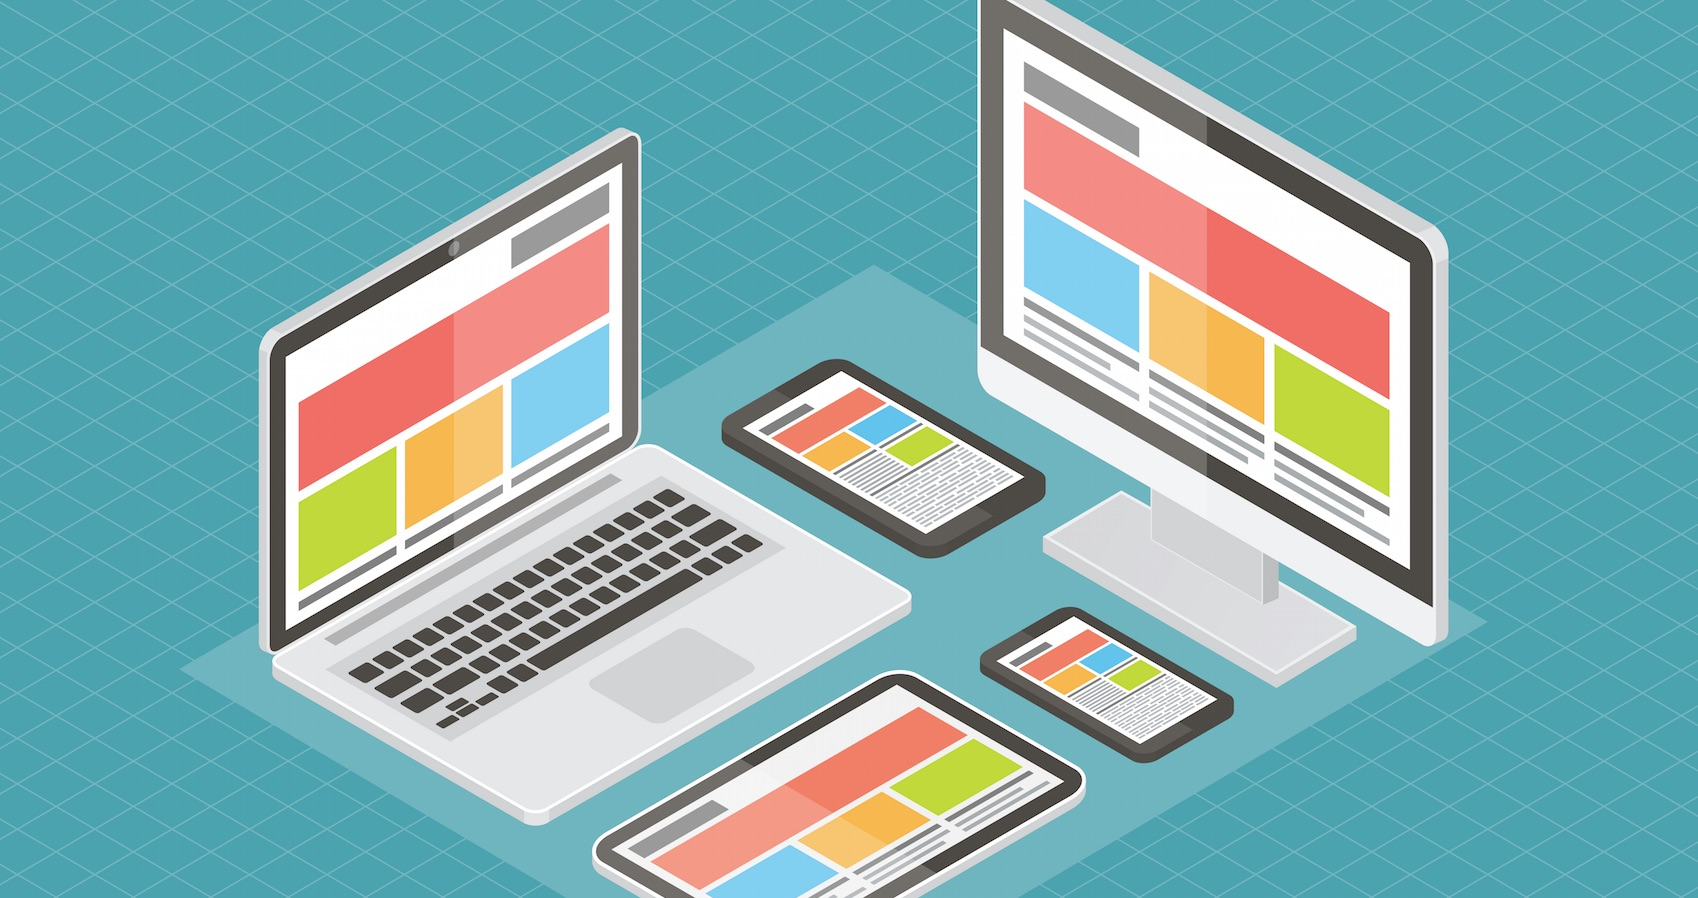 Tips To Create An Awesome Graphic Design Portfolio